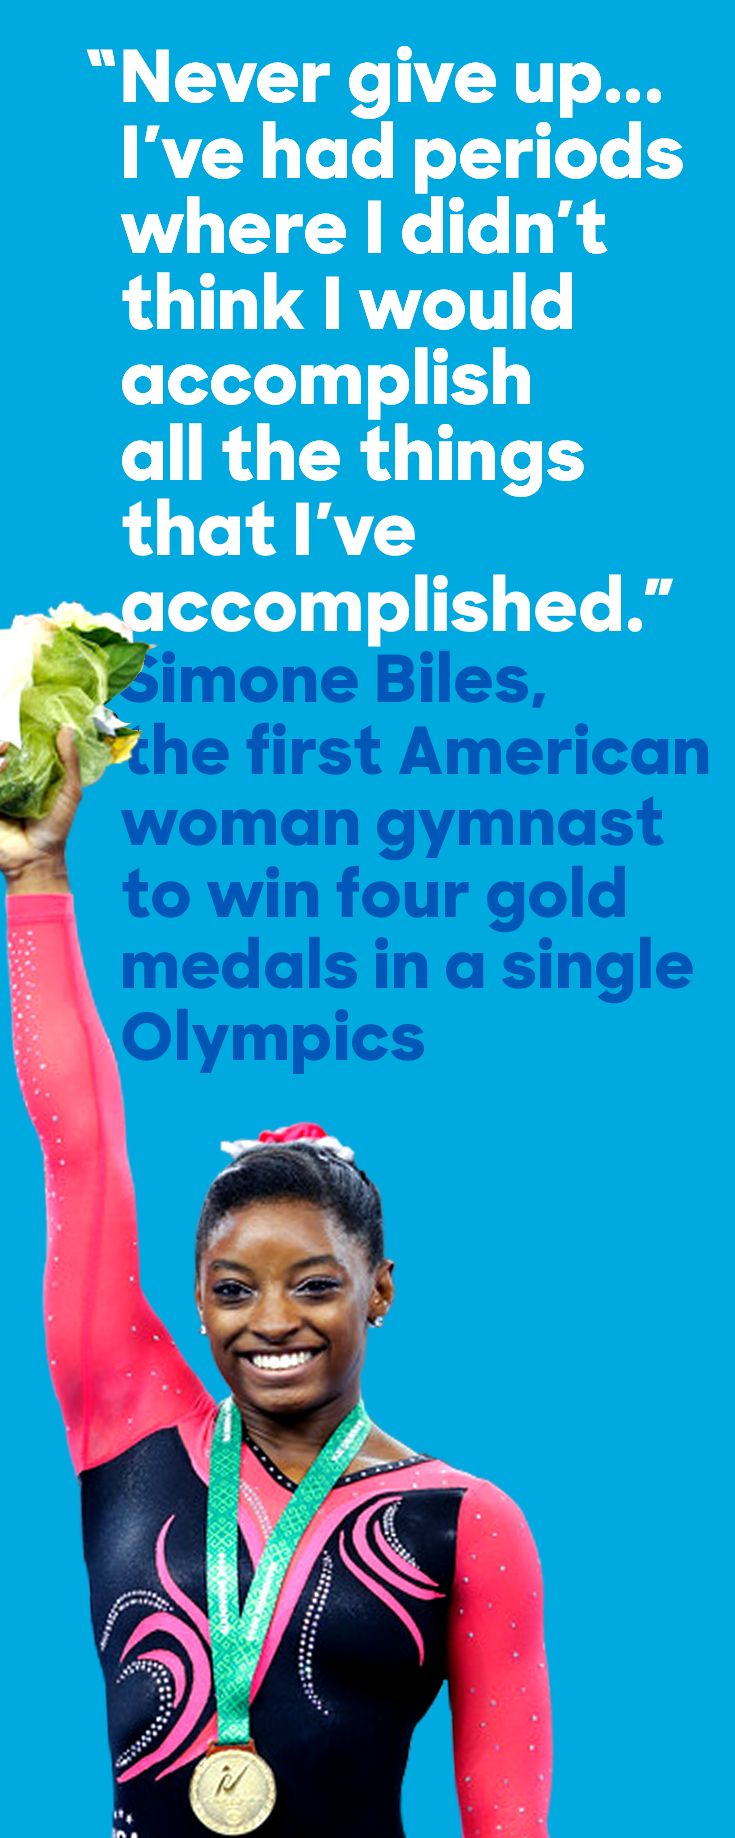 Simone Biles landed a spot in history at the Rio games after taking top honors in the floor exercise, making her the first American woman gymnast to bring home four gold medals in a single Olympics. Well done, Simone!